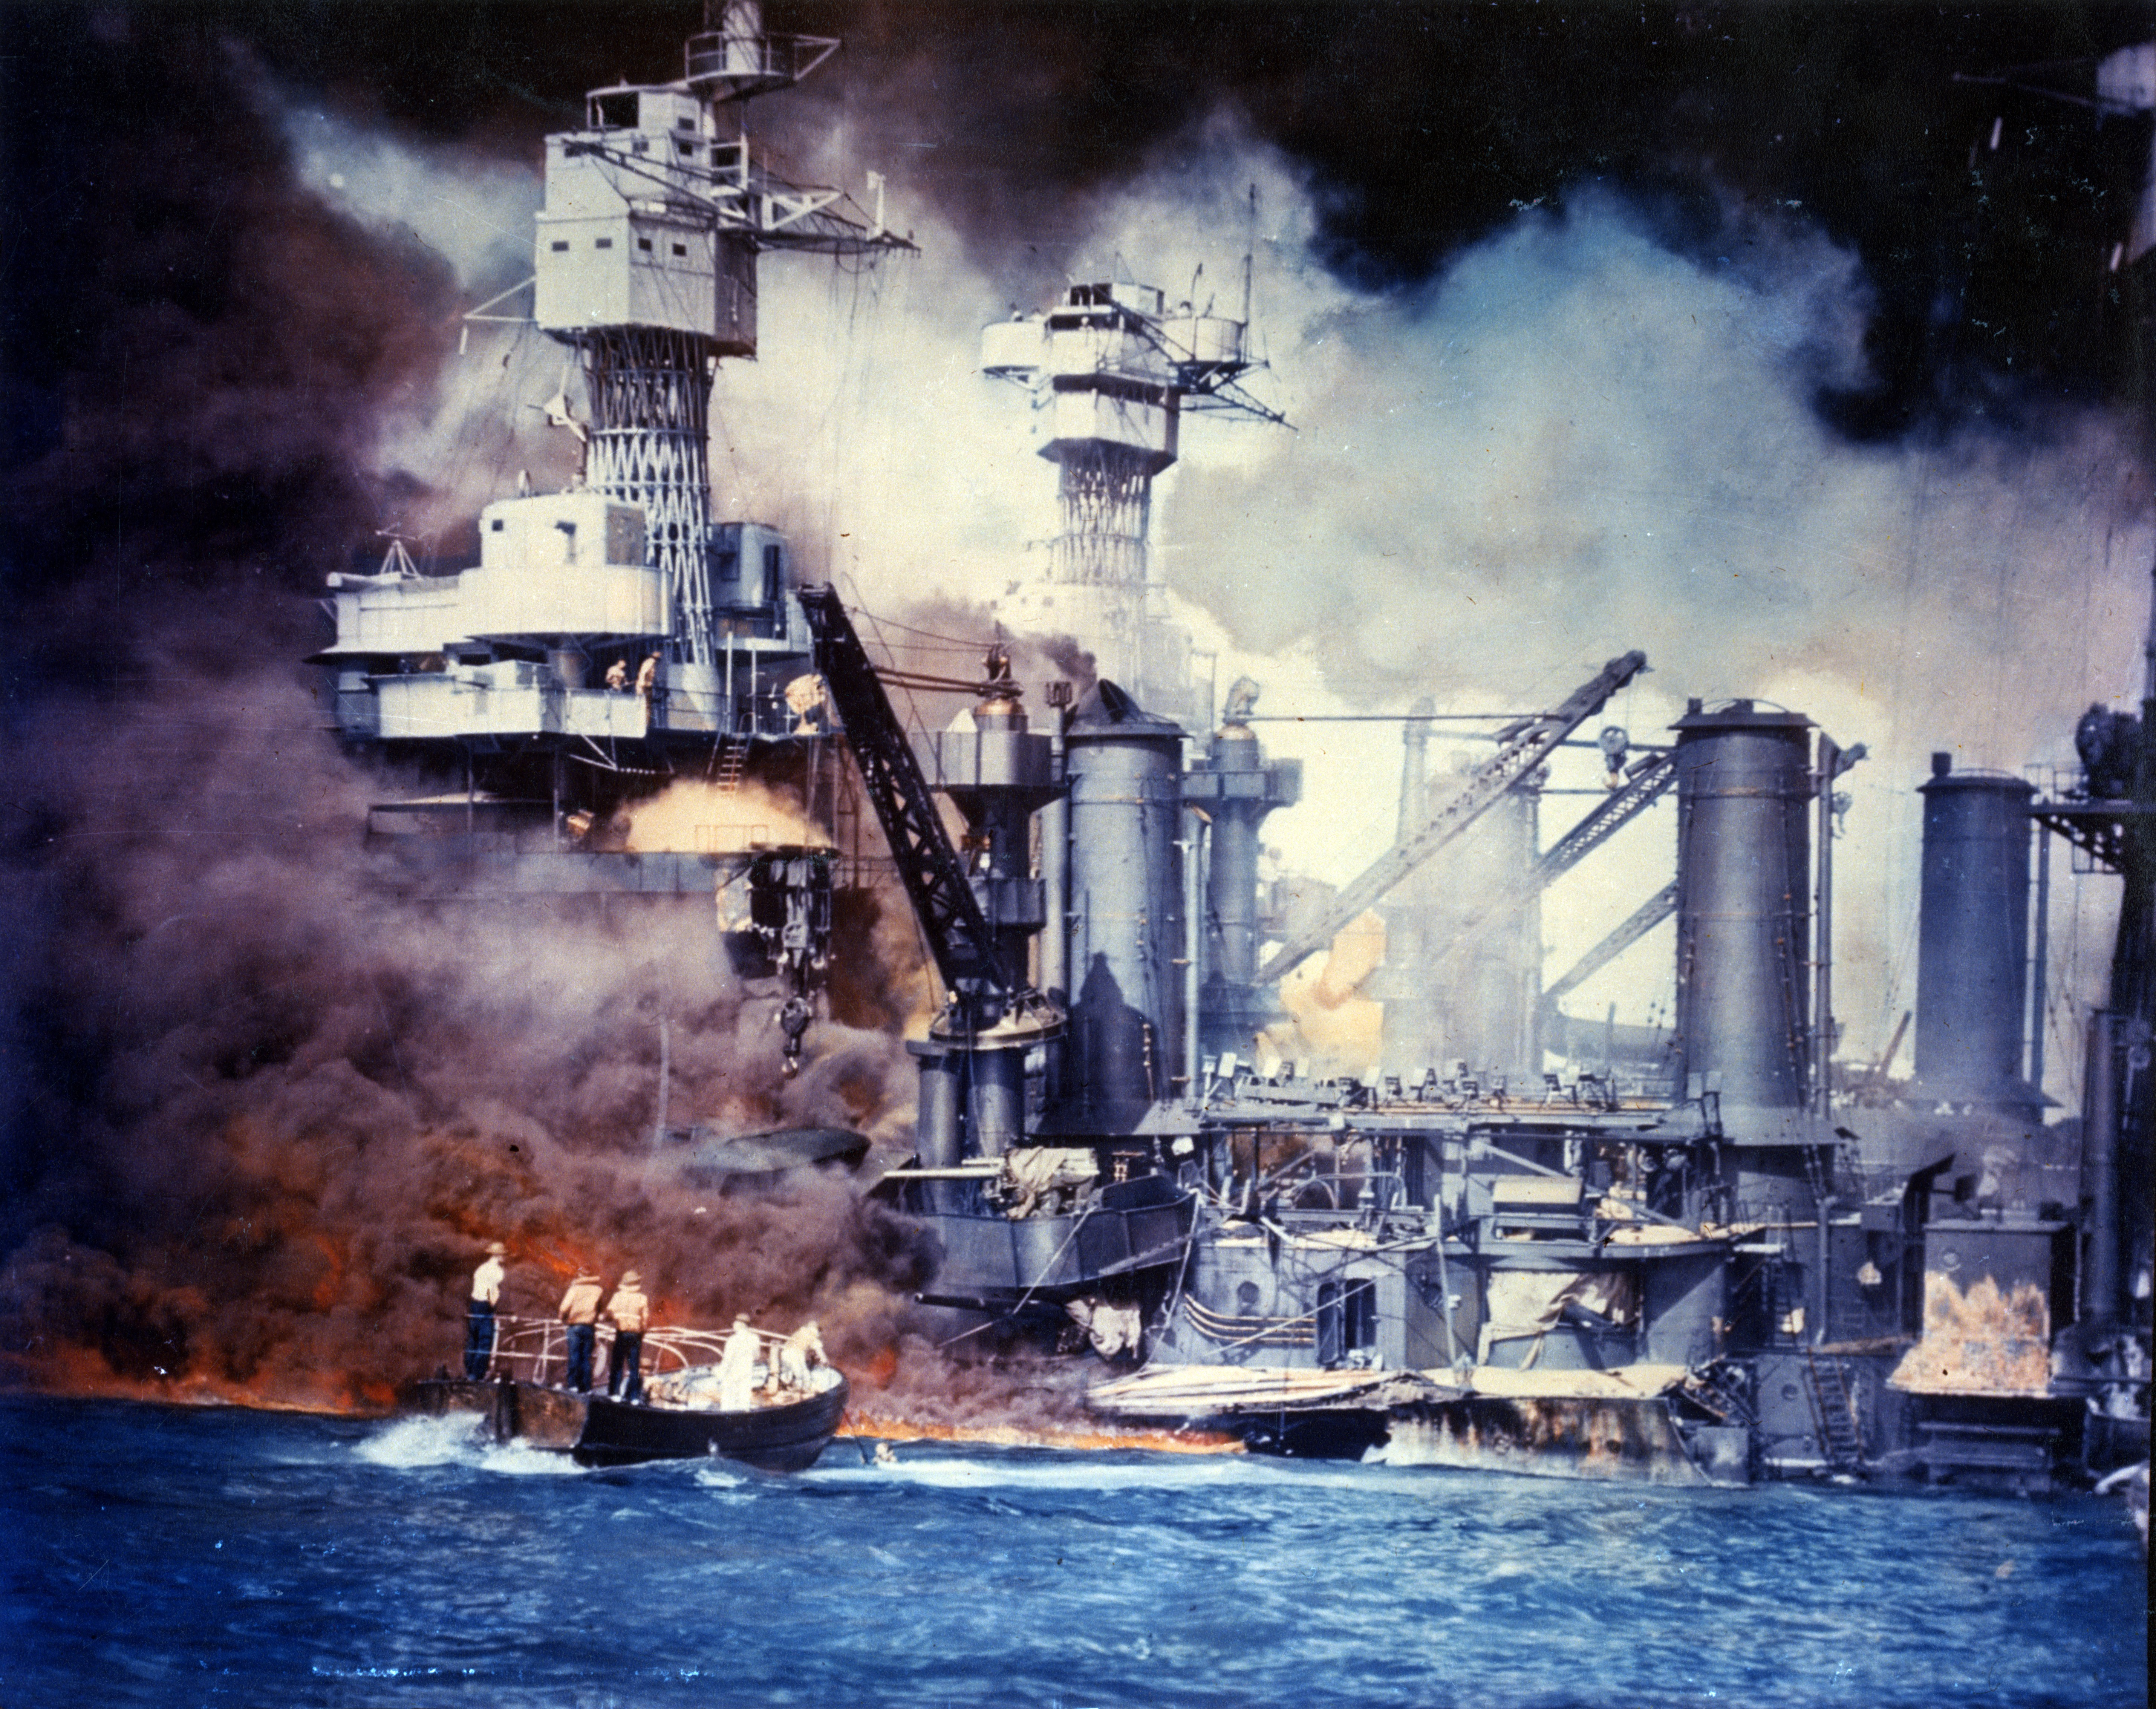 http://upload.wikimedia.org/wikipedia/commons/8/81/USS_West_Virginia%3B014824.jpg